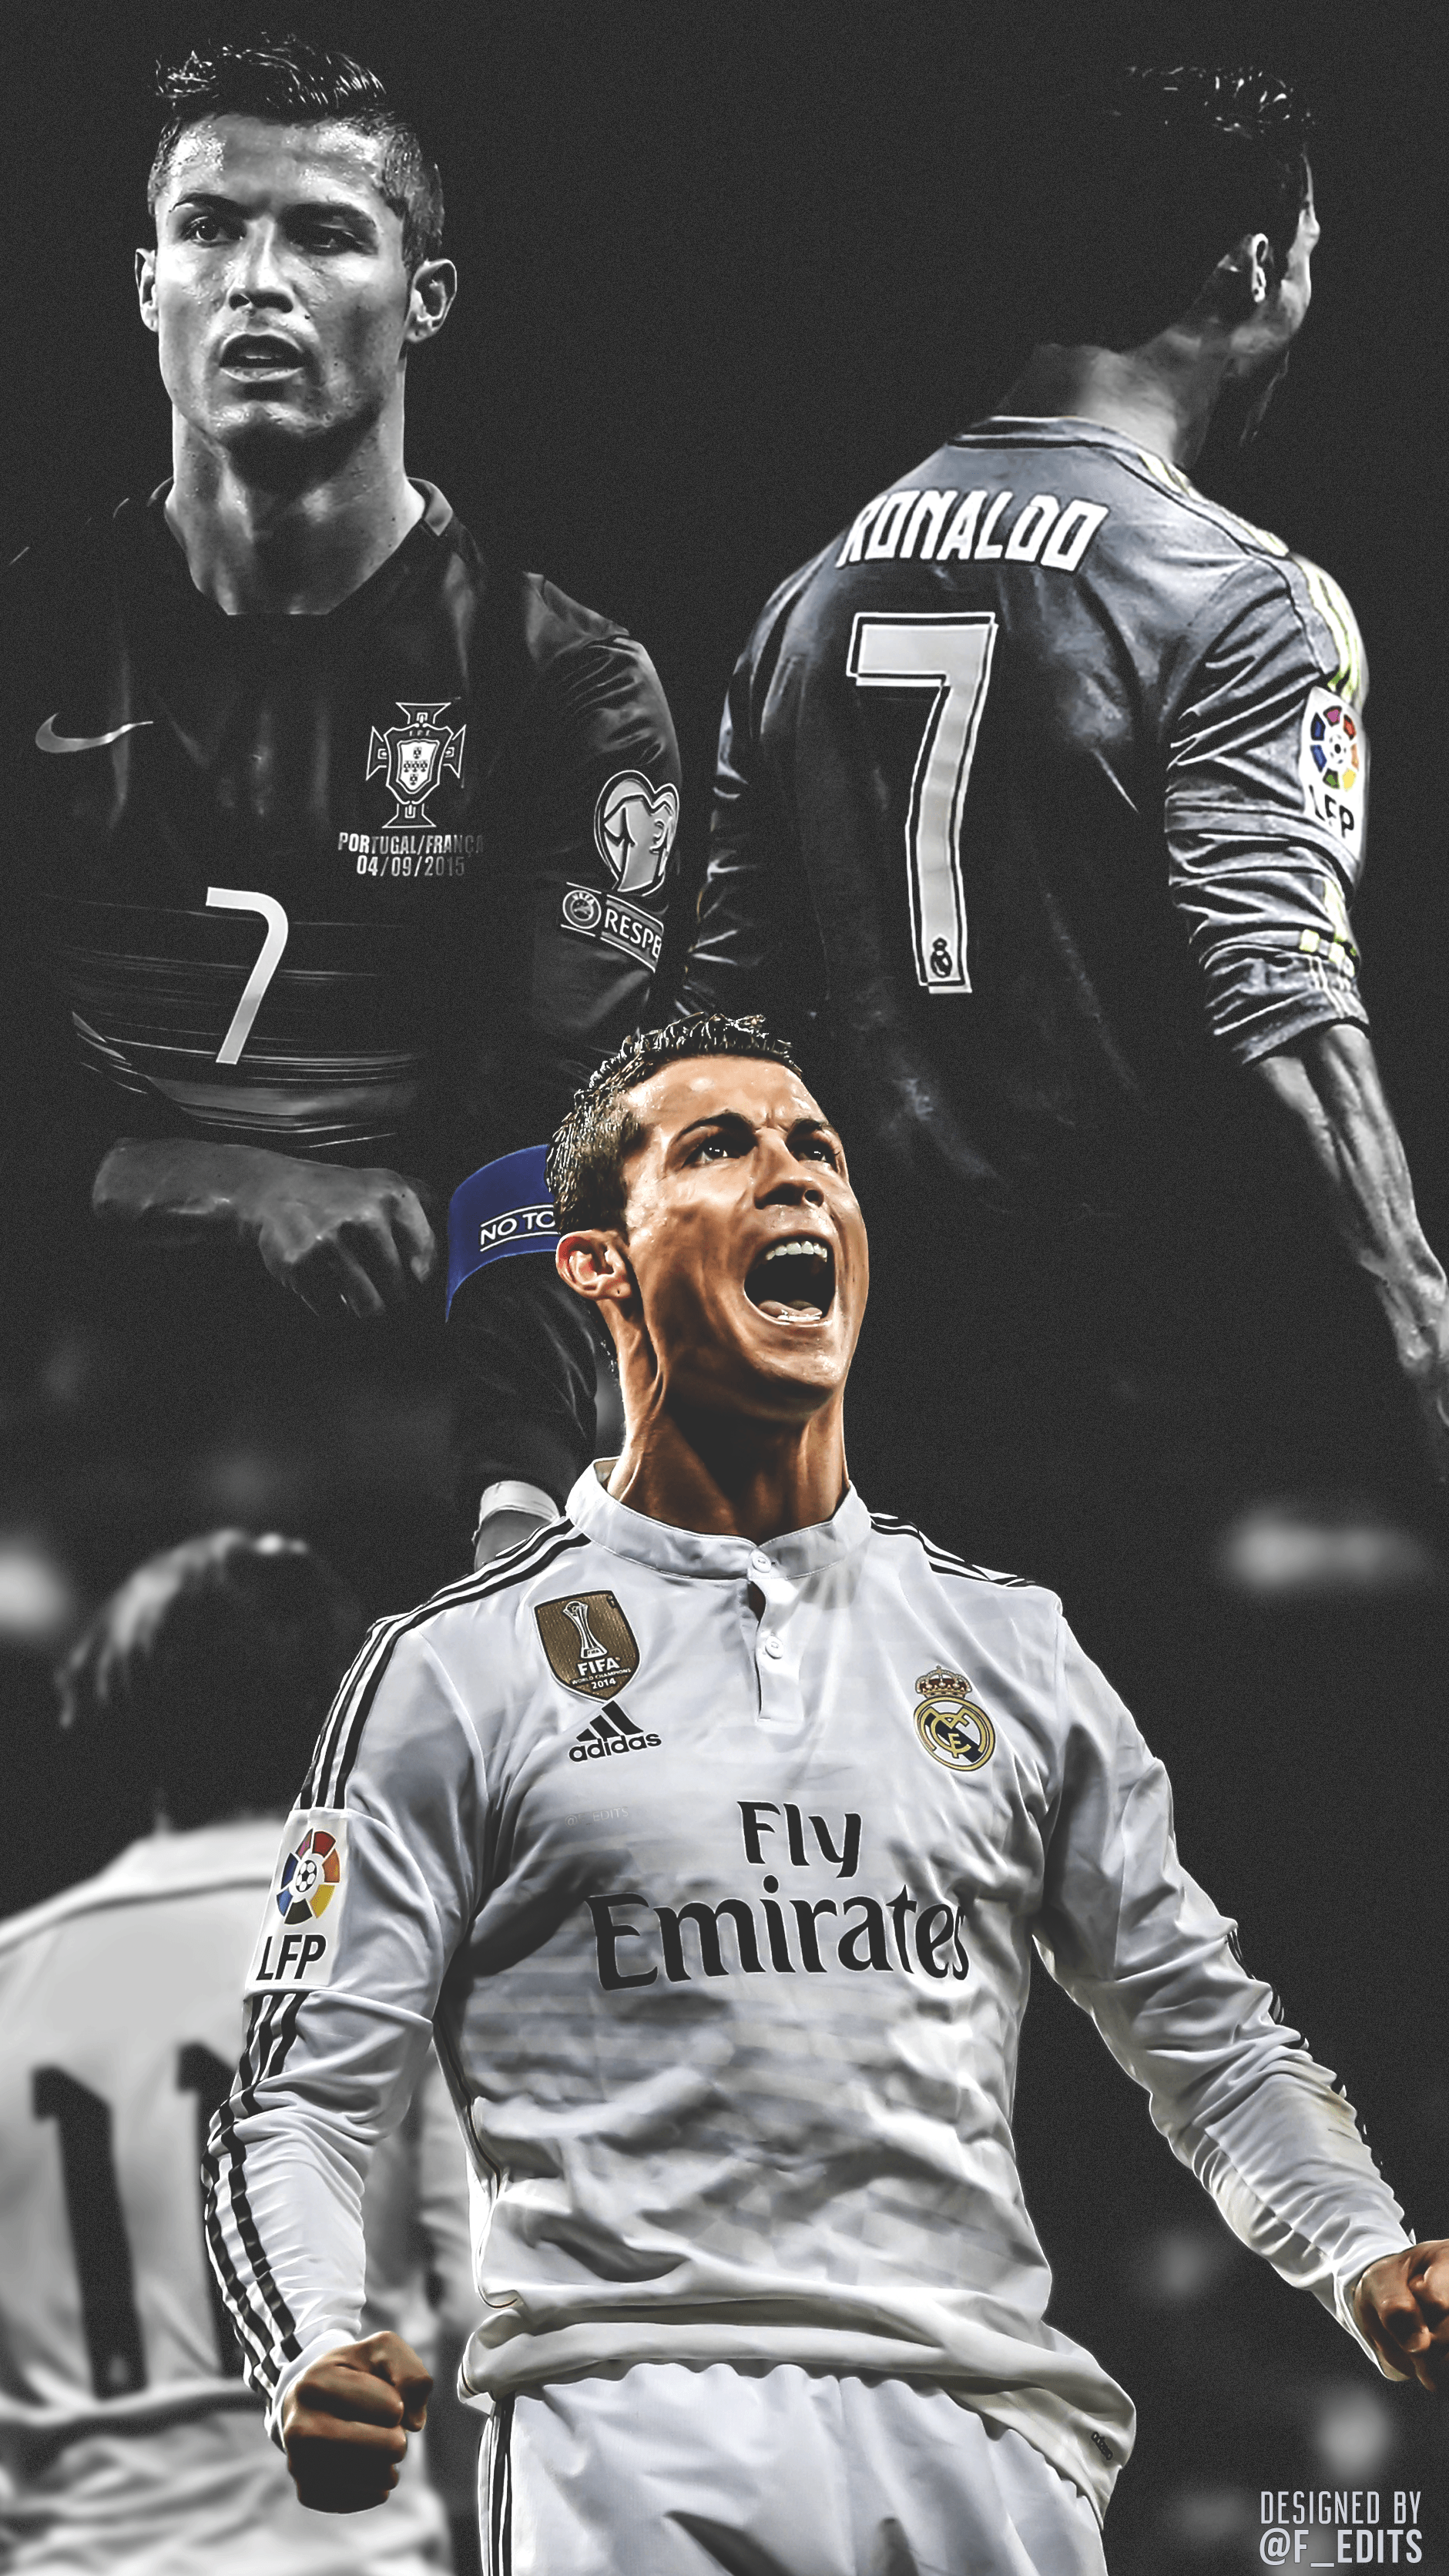 c ronaldo vs messi wallpapers 2016 wallpaper cave